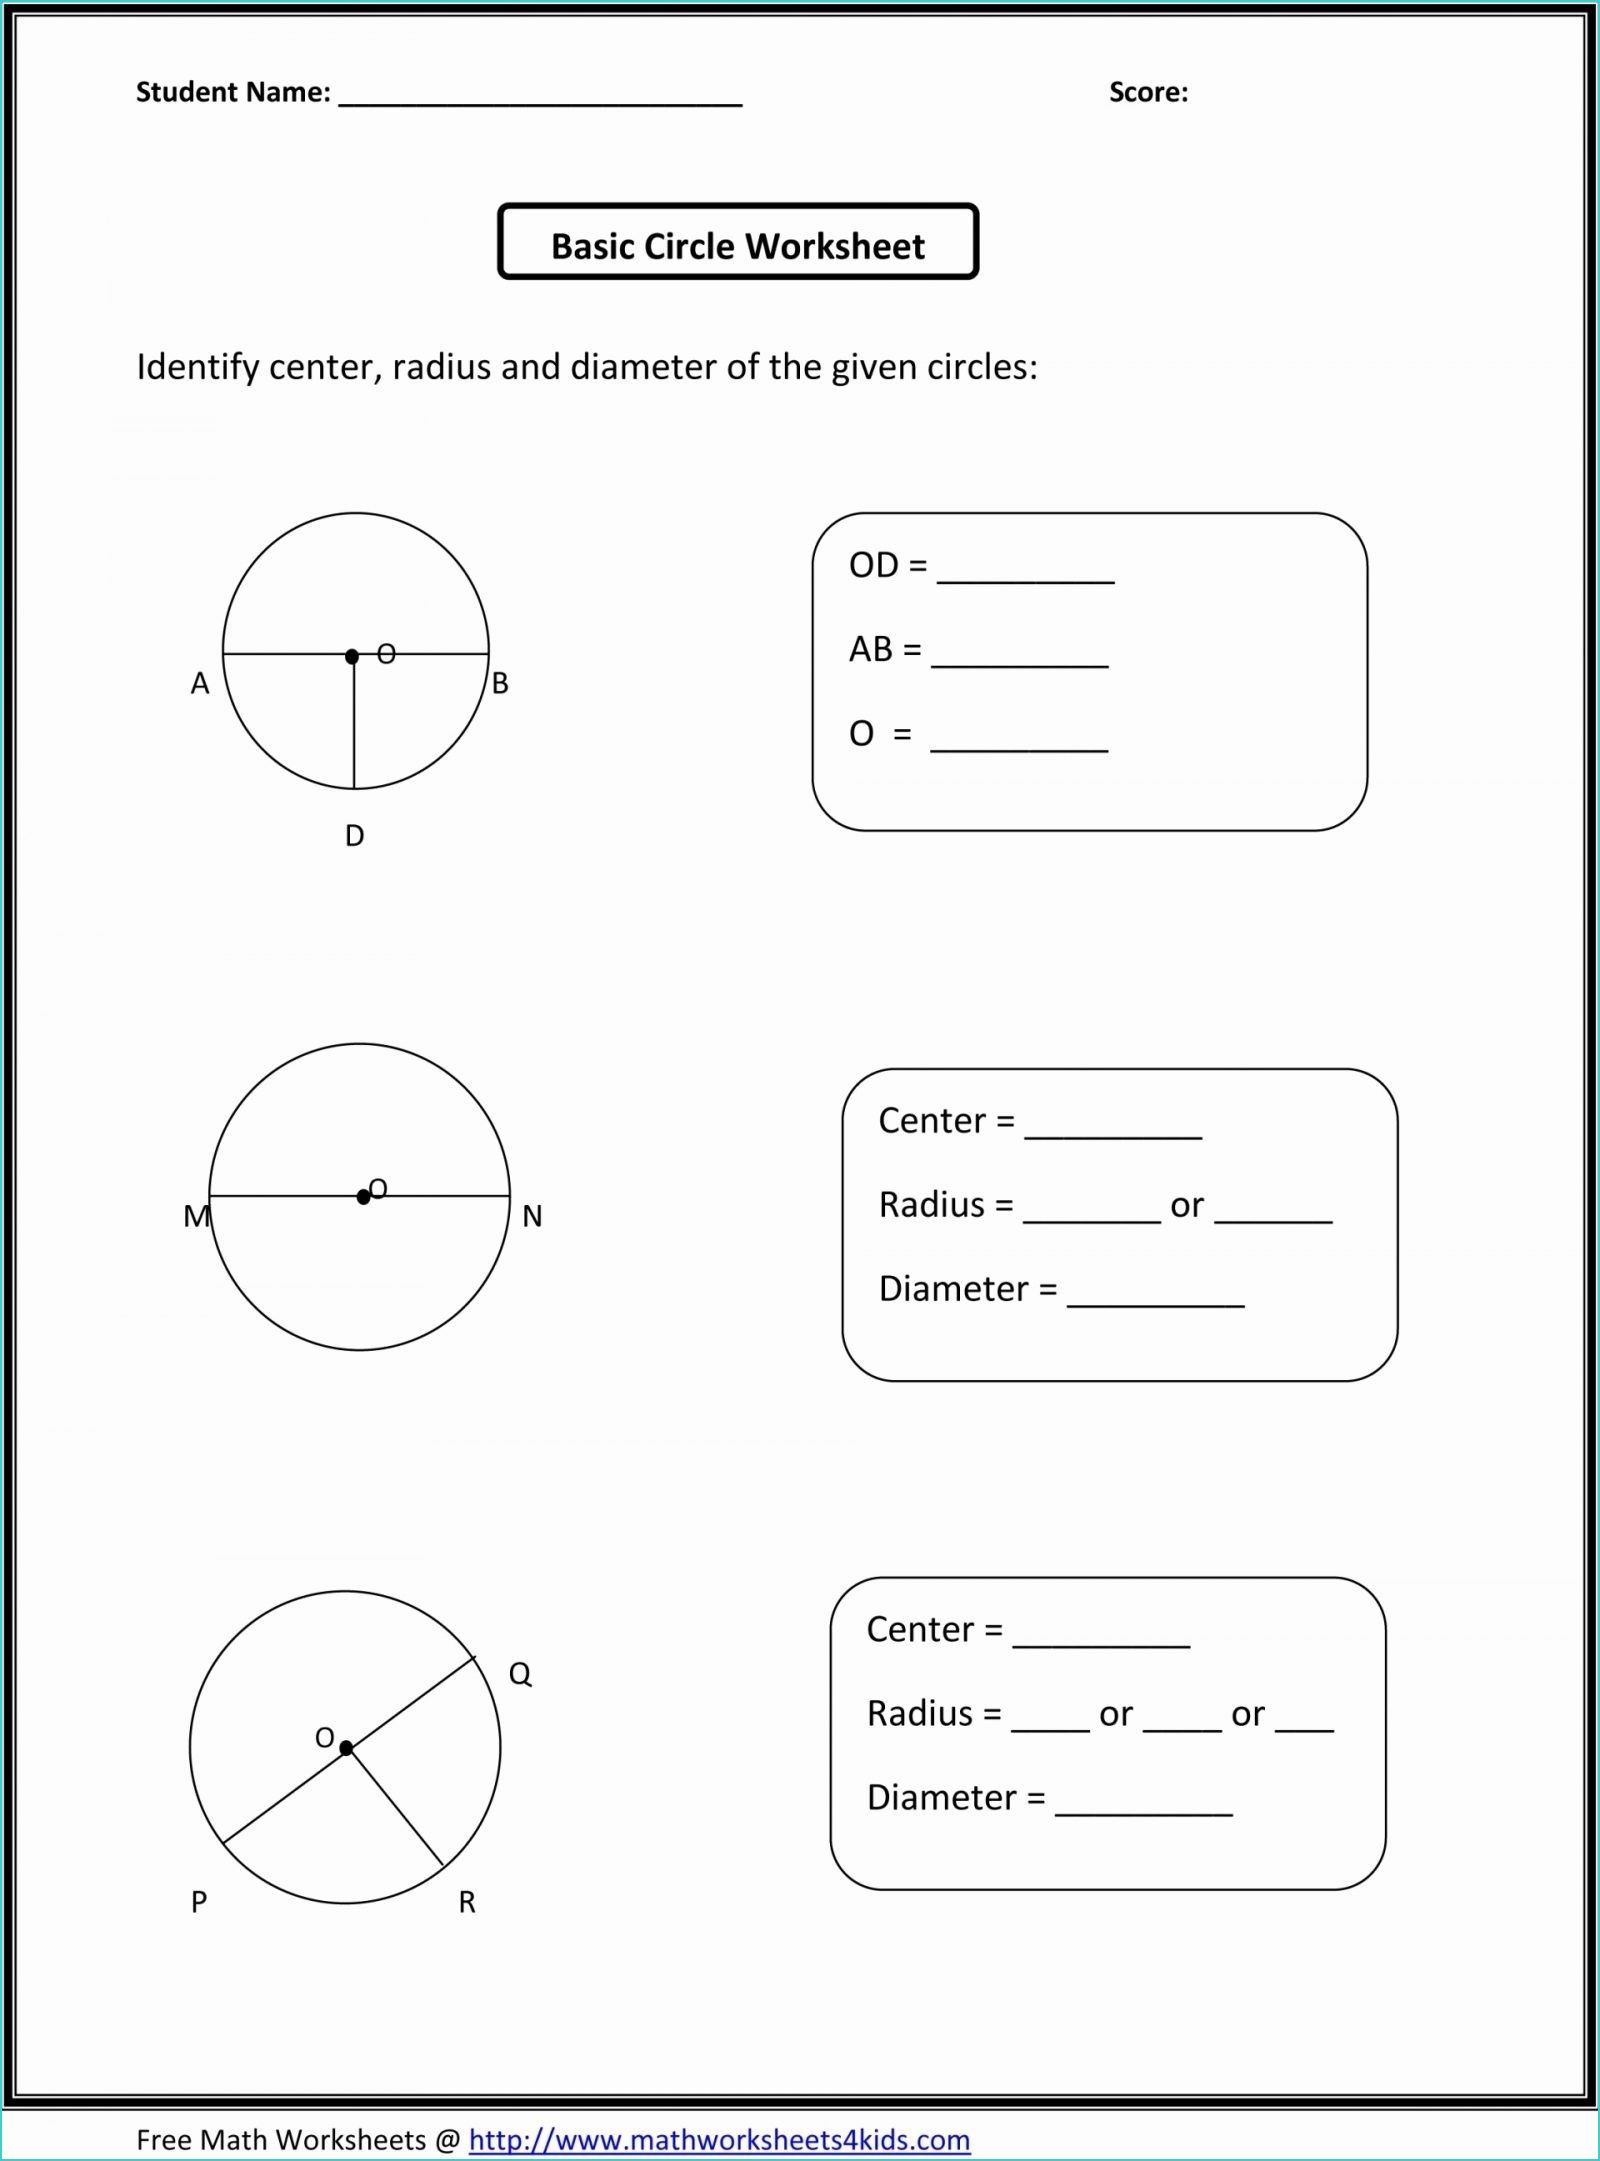 5 General Measurement 5th Grade Worksheets Di